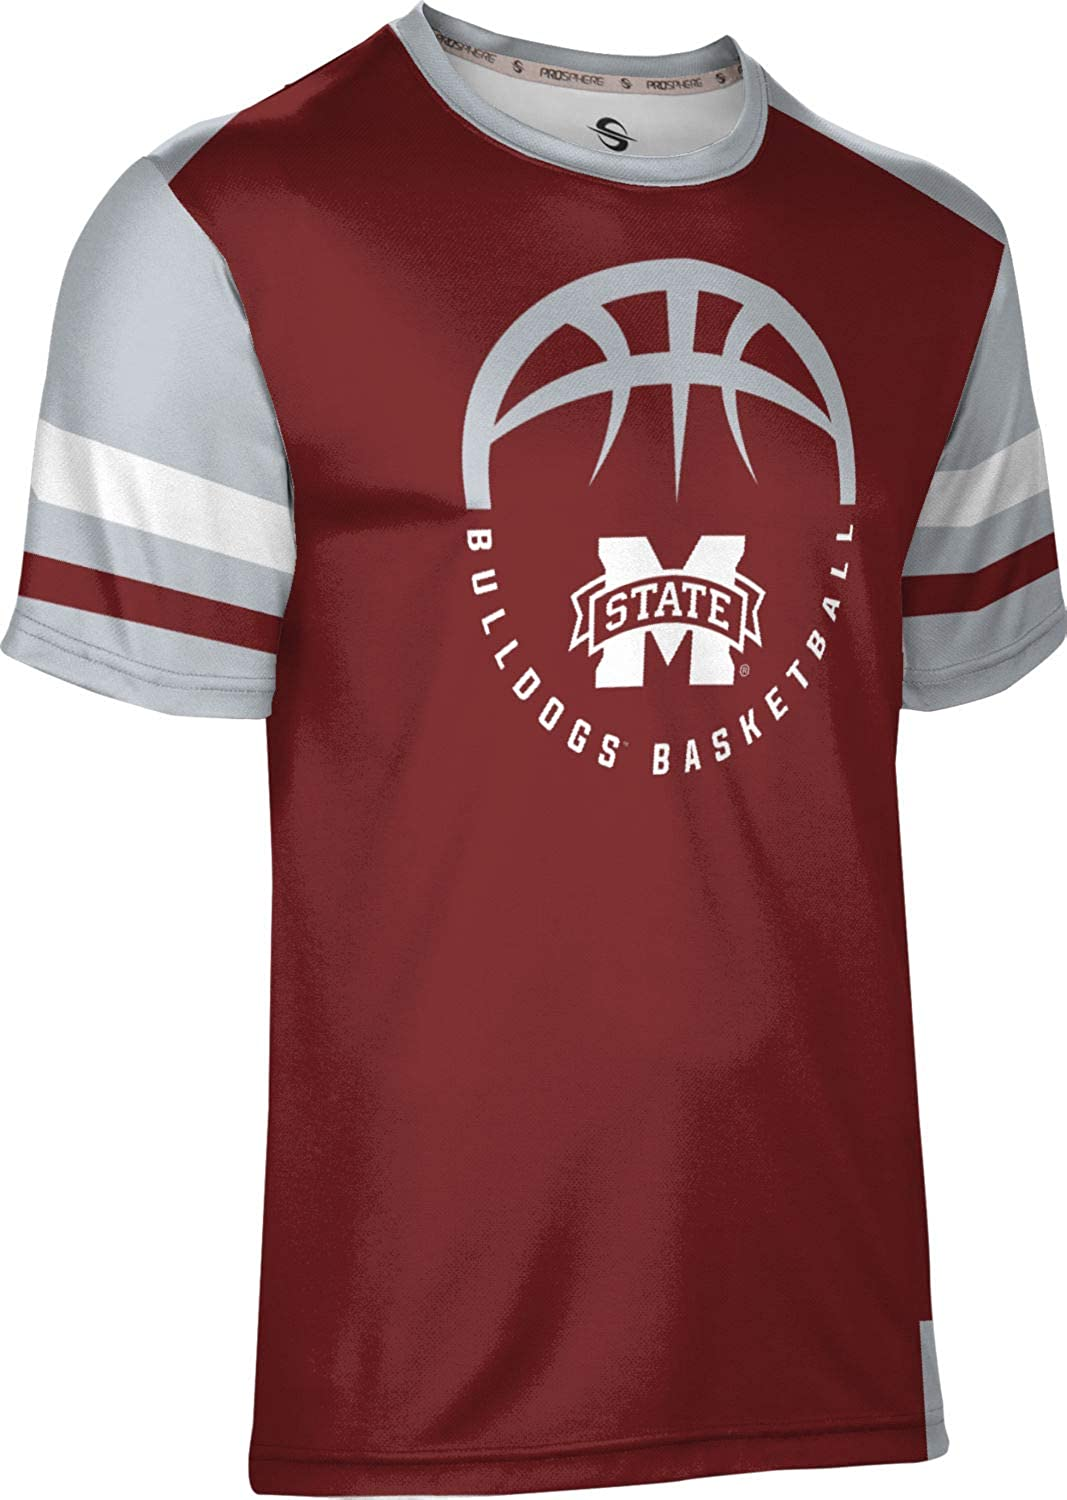 Old School ProSphere Mississippi State University Basketball Boys Performance T-Shirt